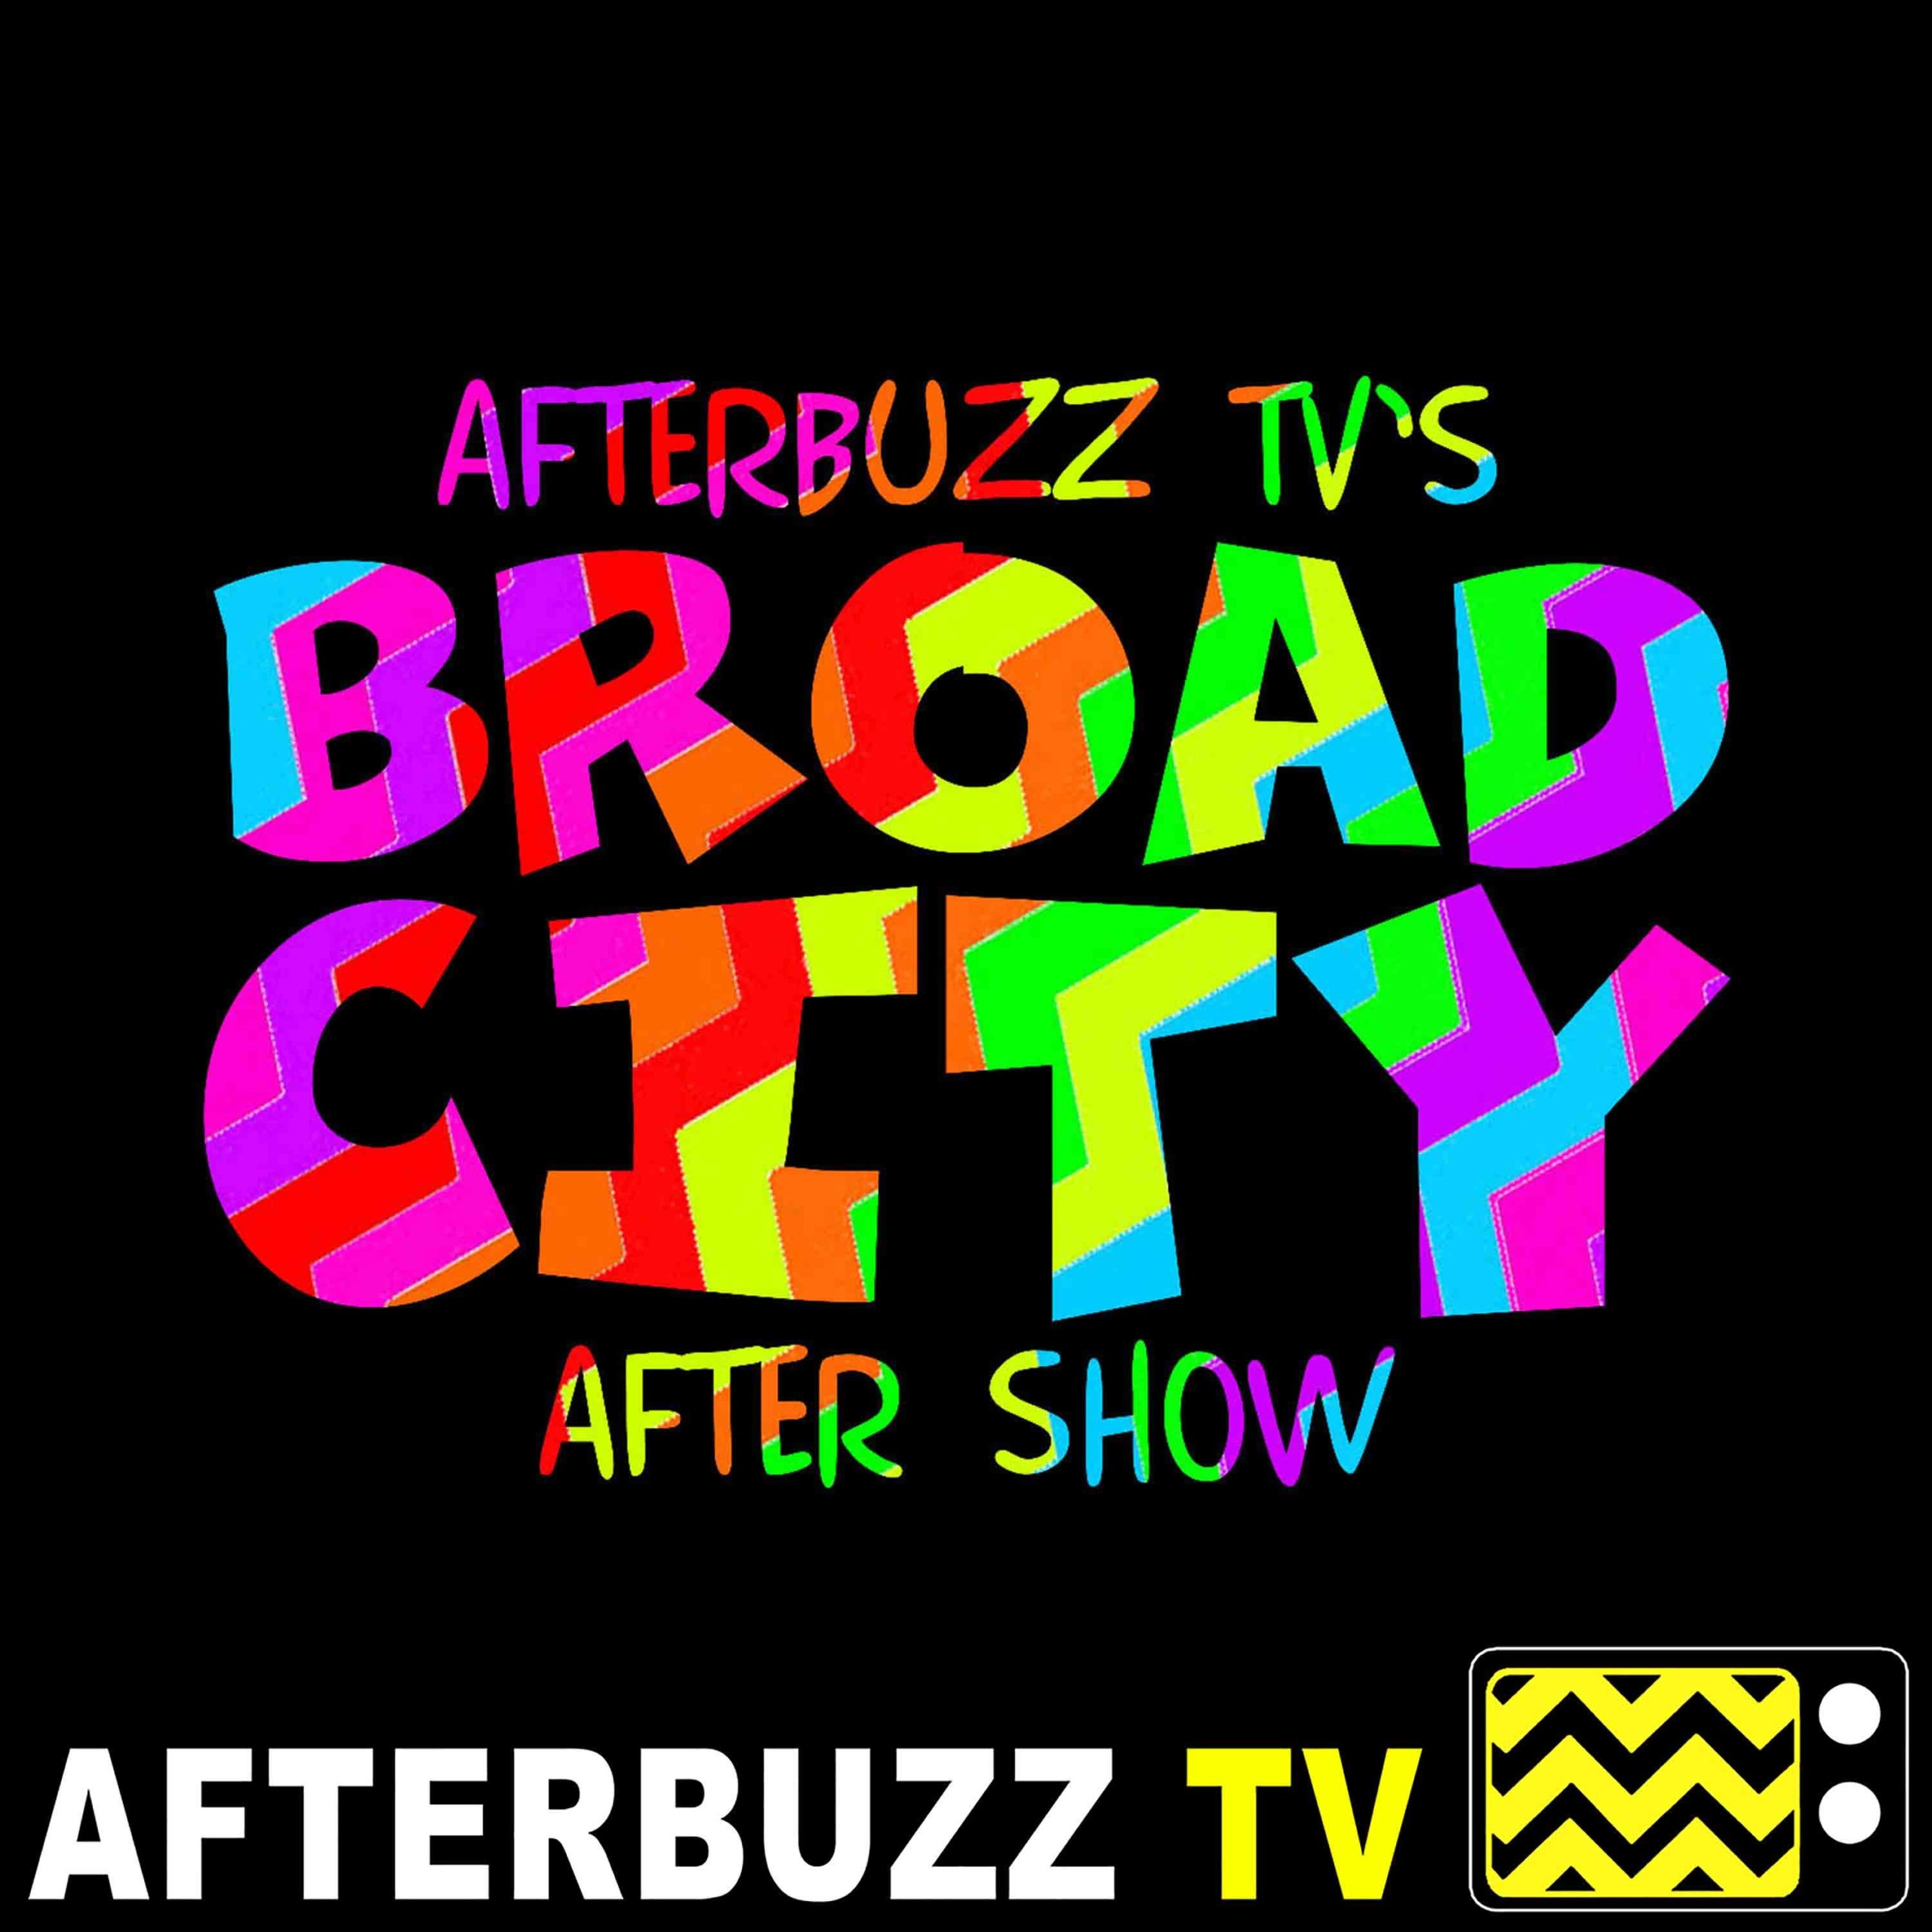 Broad City S:3 | Getting There; Jews On a Plane E:9 & E:10 | AfterBuzz TV AfterShow